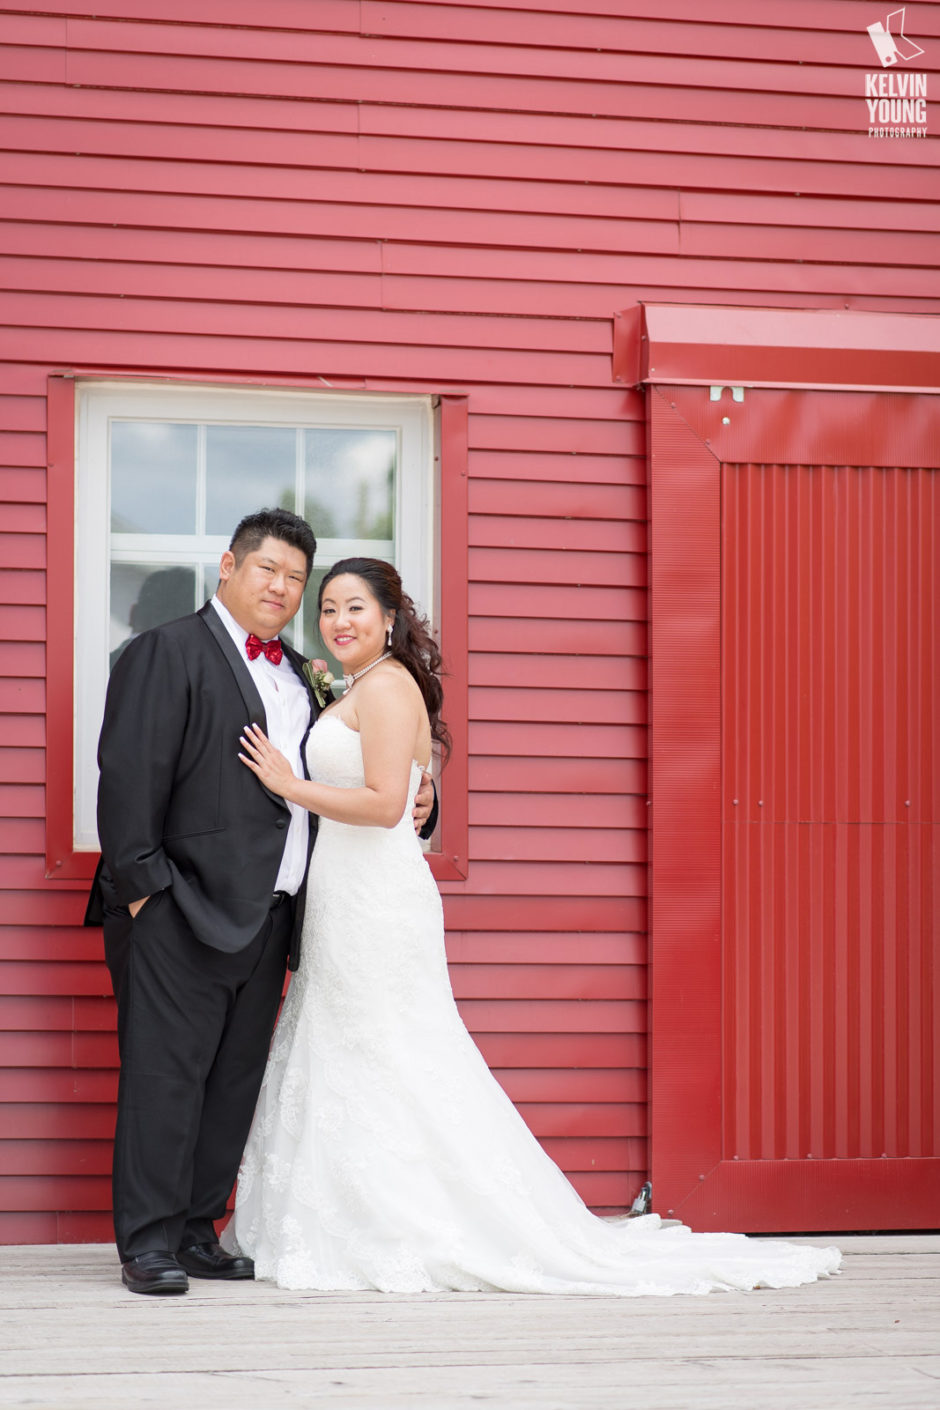 kelvin-young-photography_steph-ray-markham-wedding-photography_022